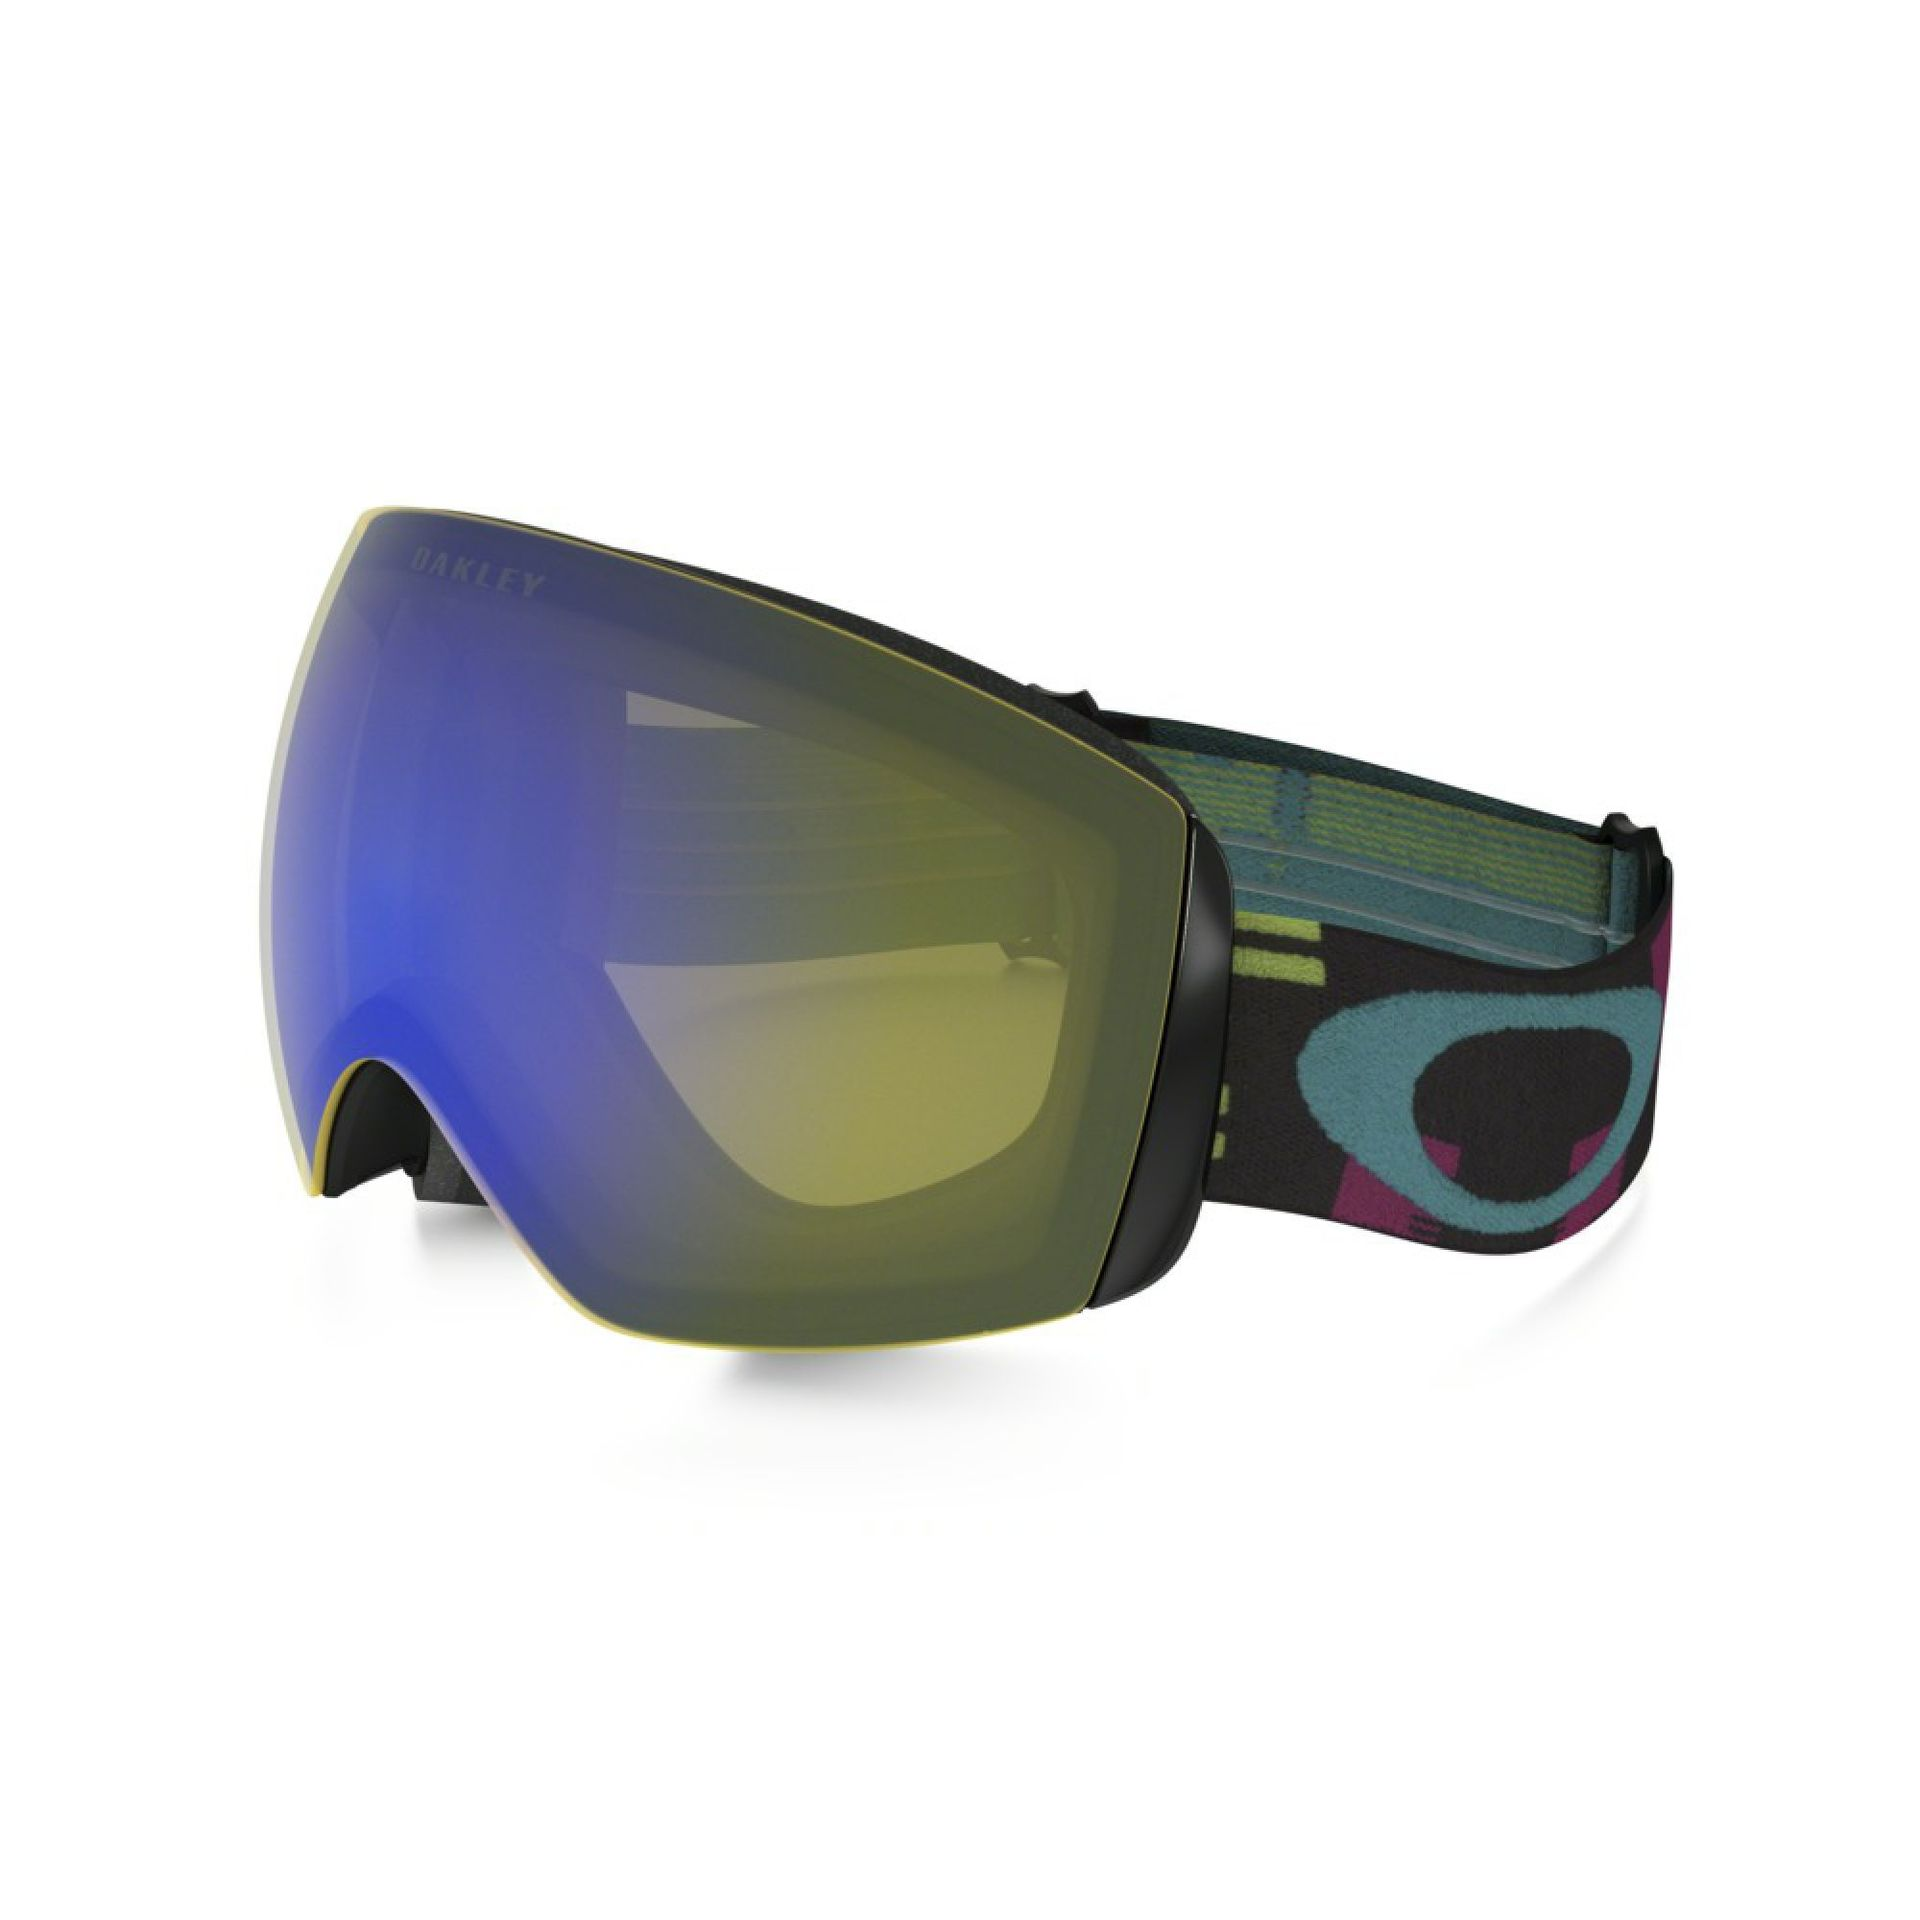 GOGLE OAKLEY FLIGHT DECK XM DISRUPTIVE NEON HI YELLOW IRIDIUM